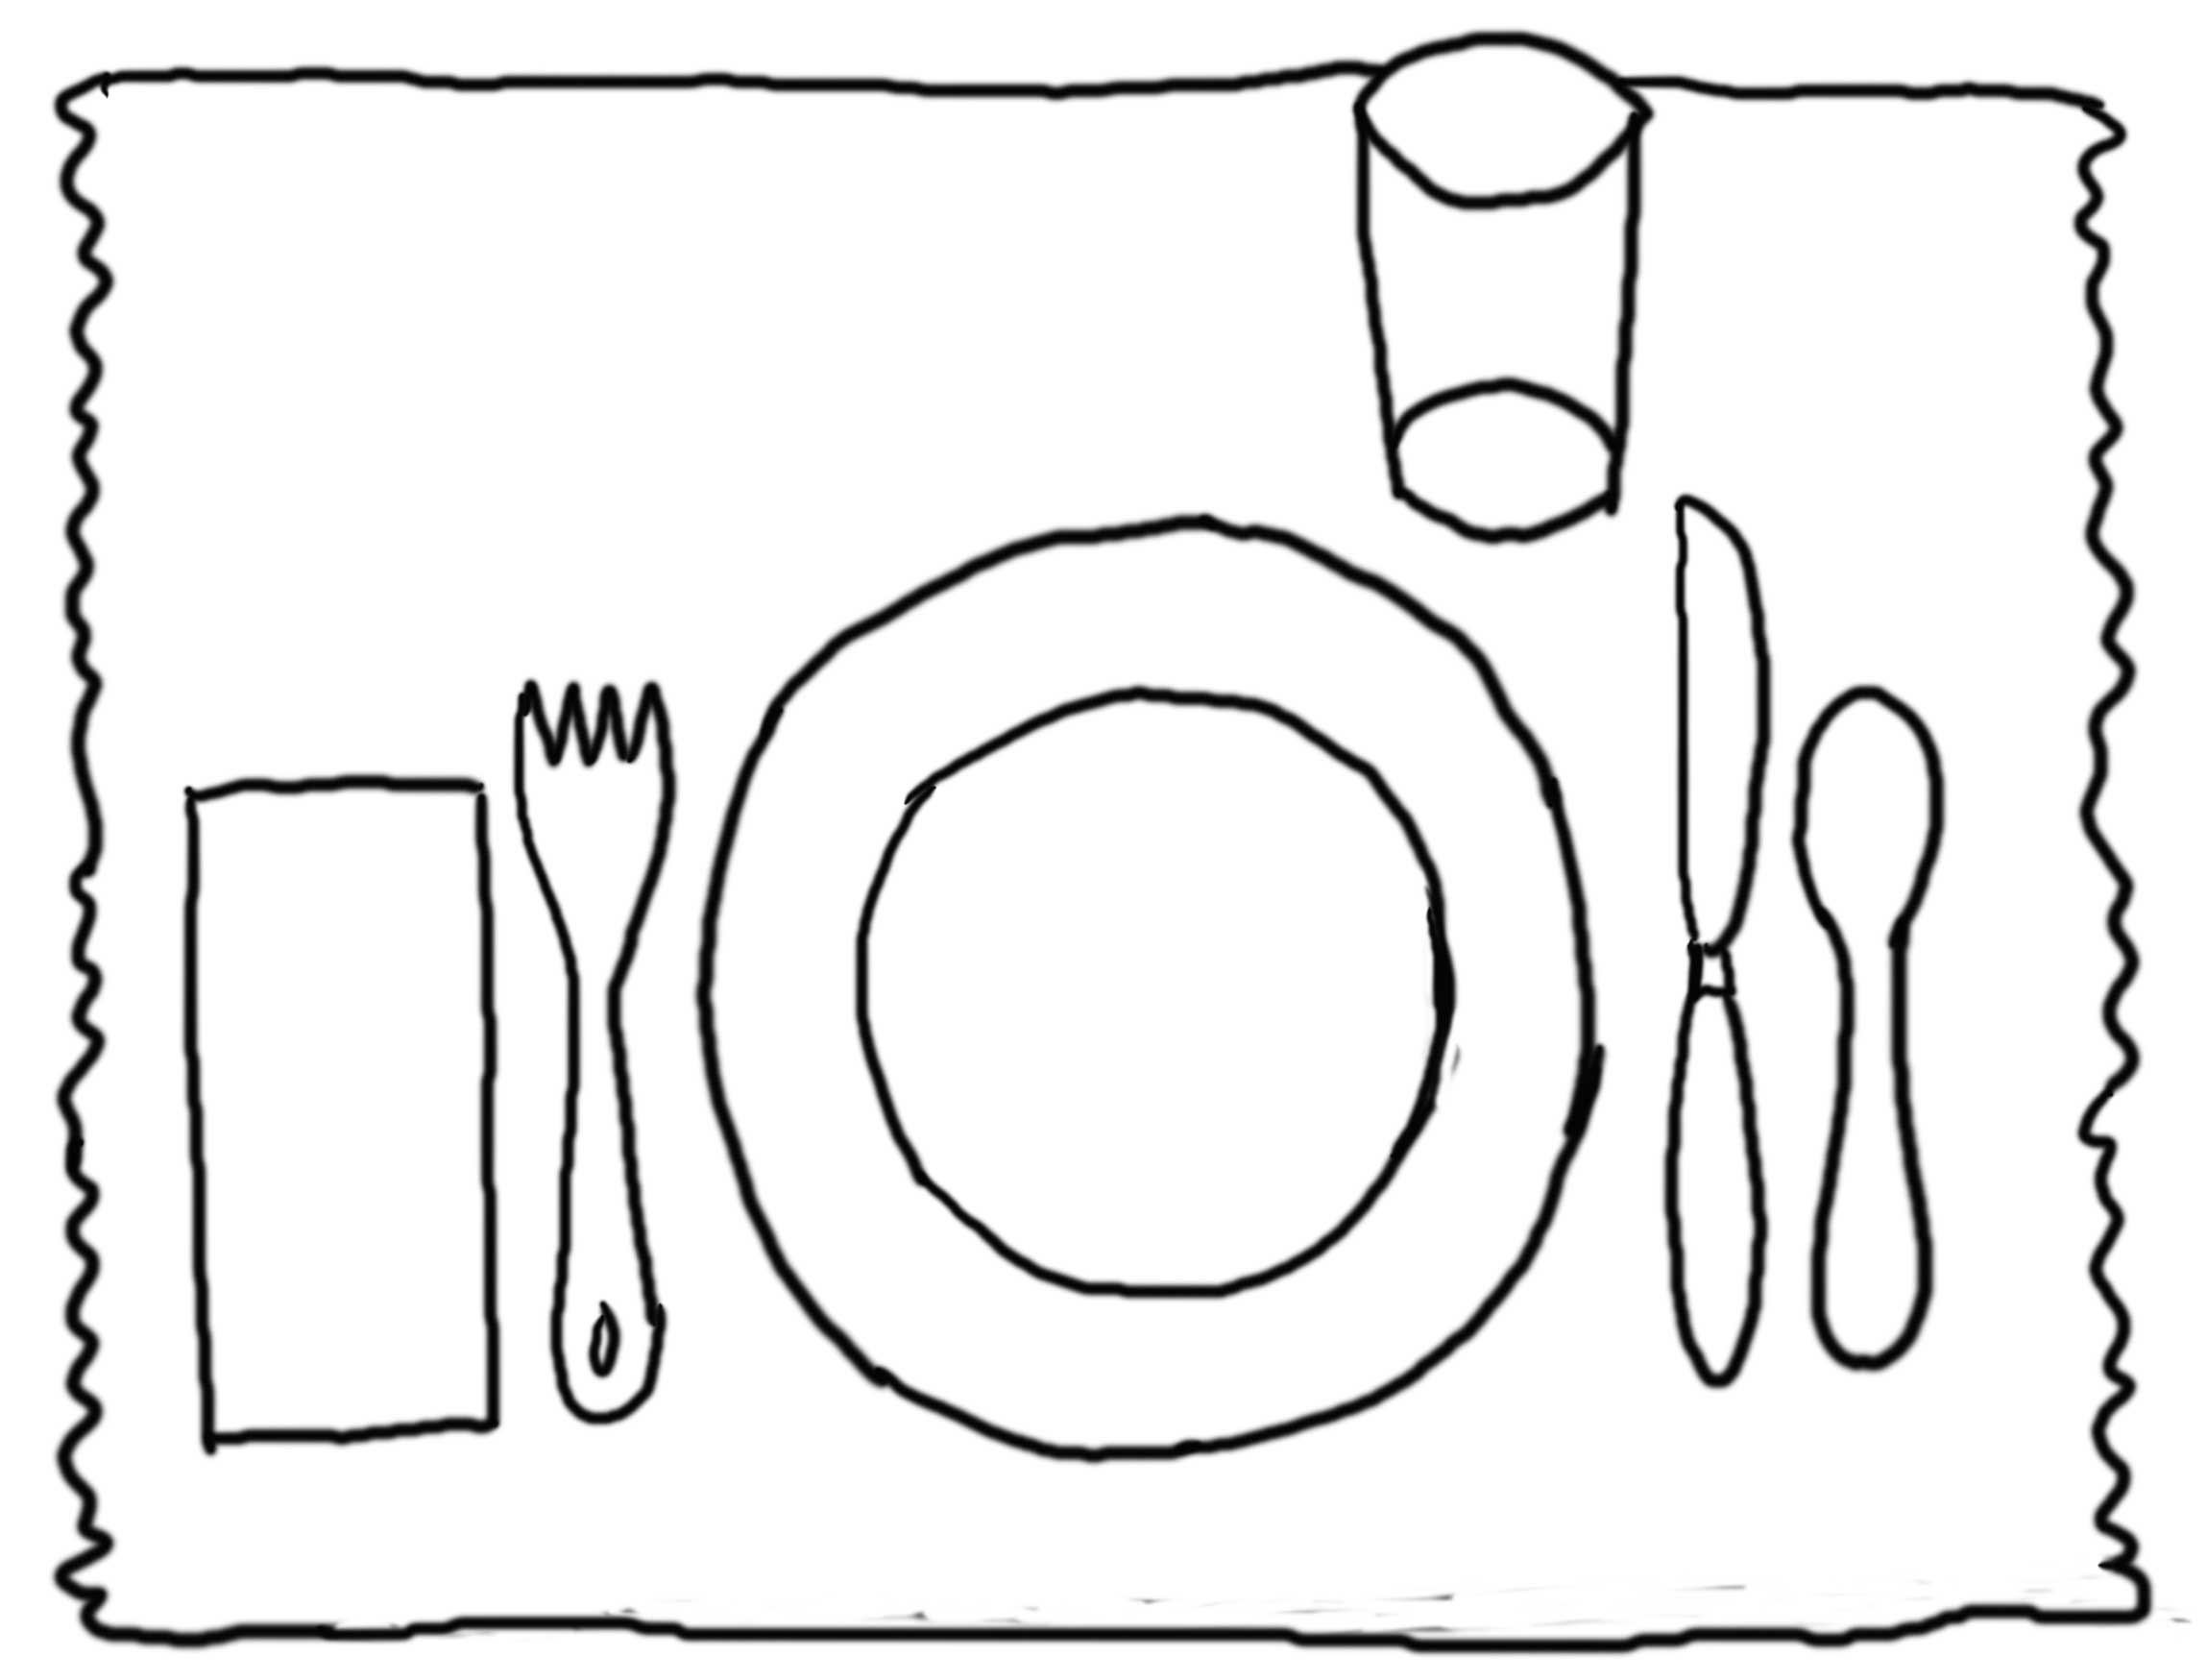 Table Manners Coloring Pages.